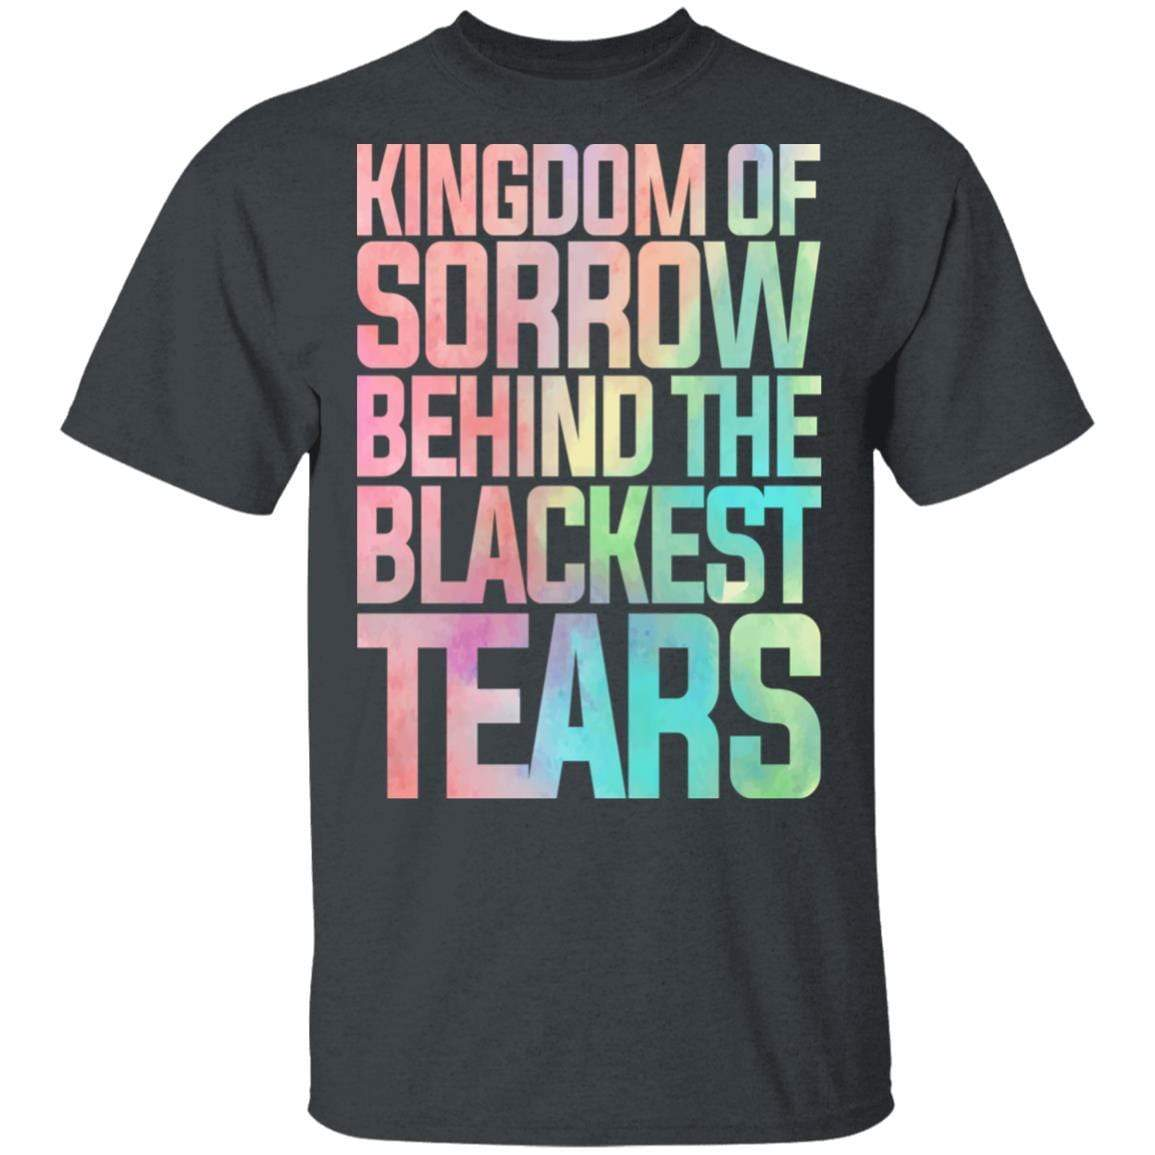 Kingdom Of Sorrow Behind The Blackest Tears T-Shirts, Hoodies 1049-9957-87589179-48192 - Tee Ript